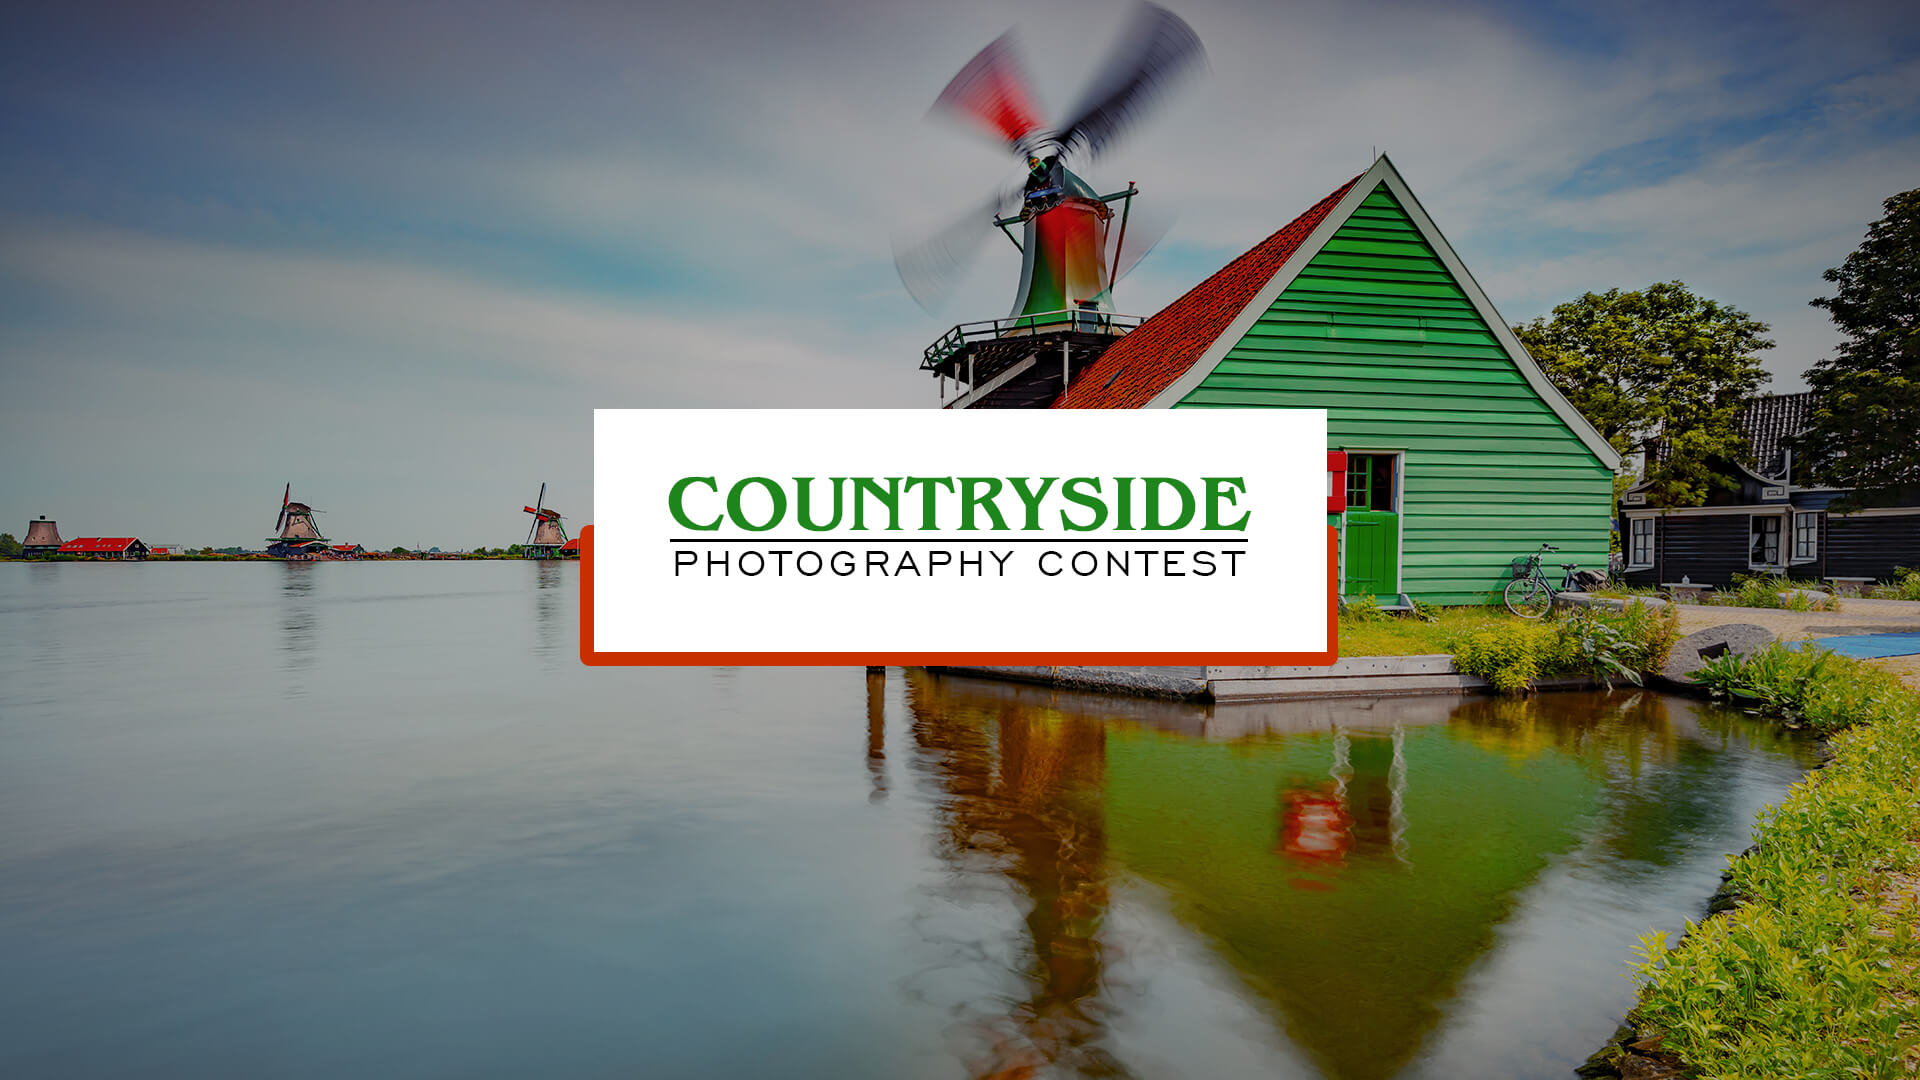 Countryside Photography Contest